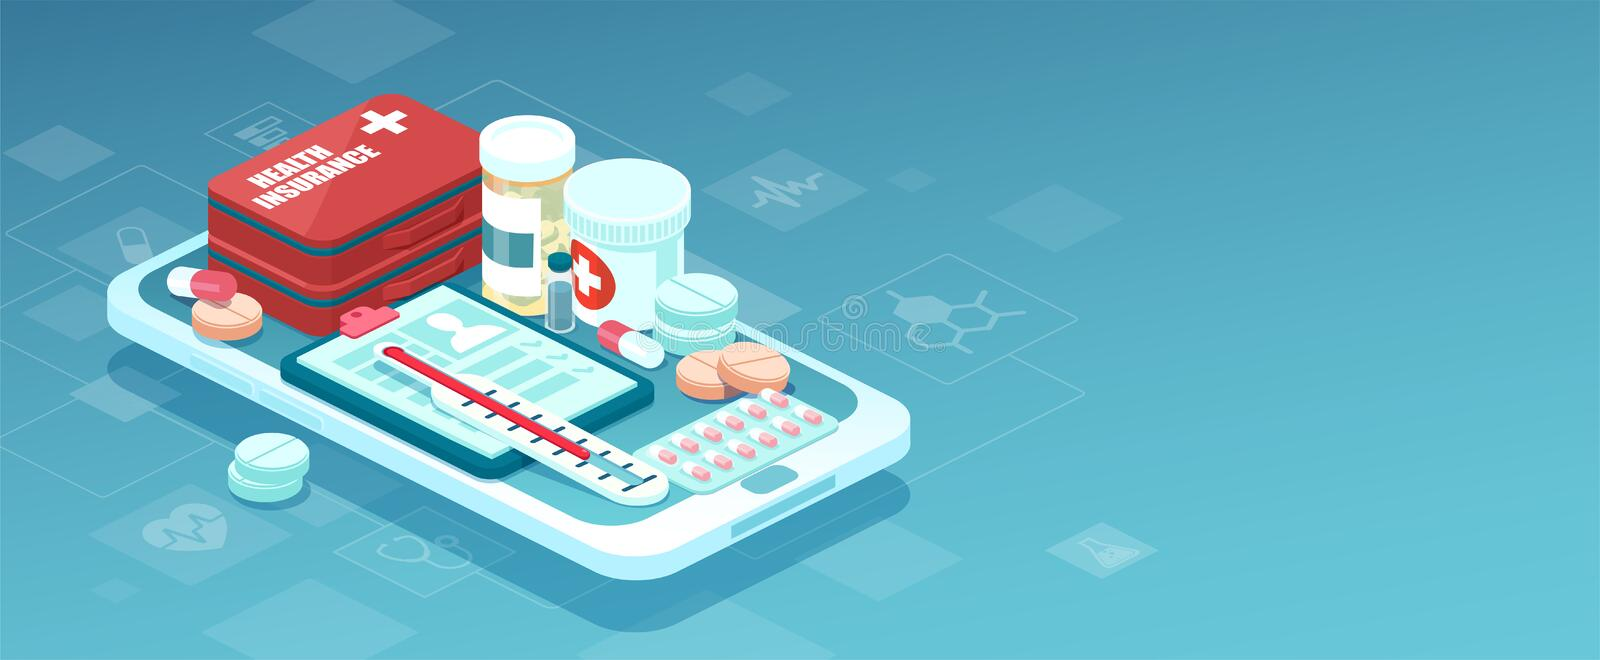 Vector of prescription drugs, first aid kit and medical supplies being sold online via smartphone application technology vector illustration